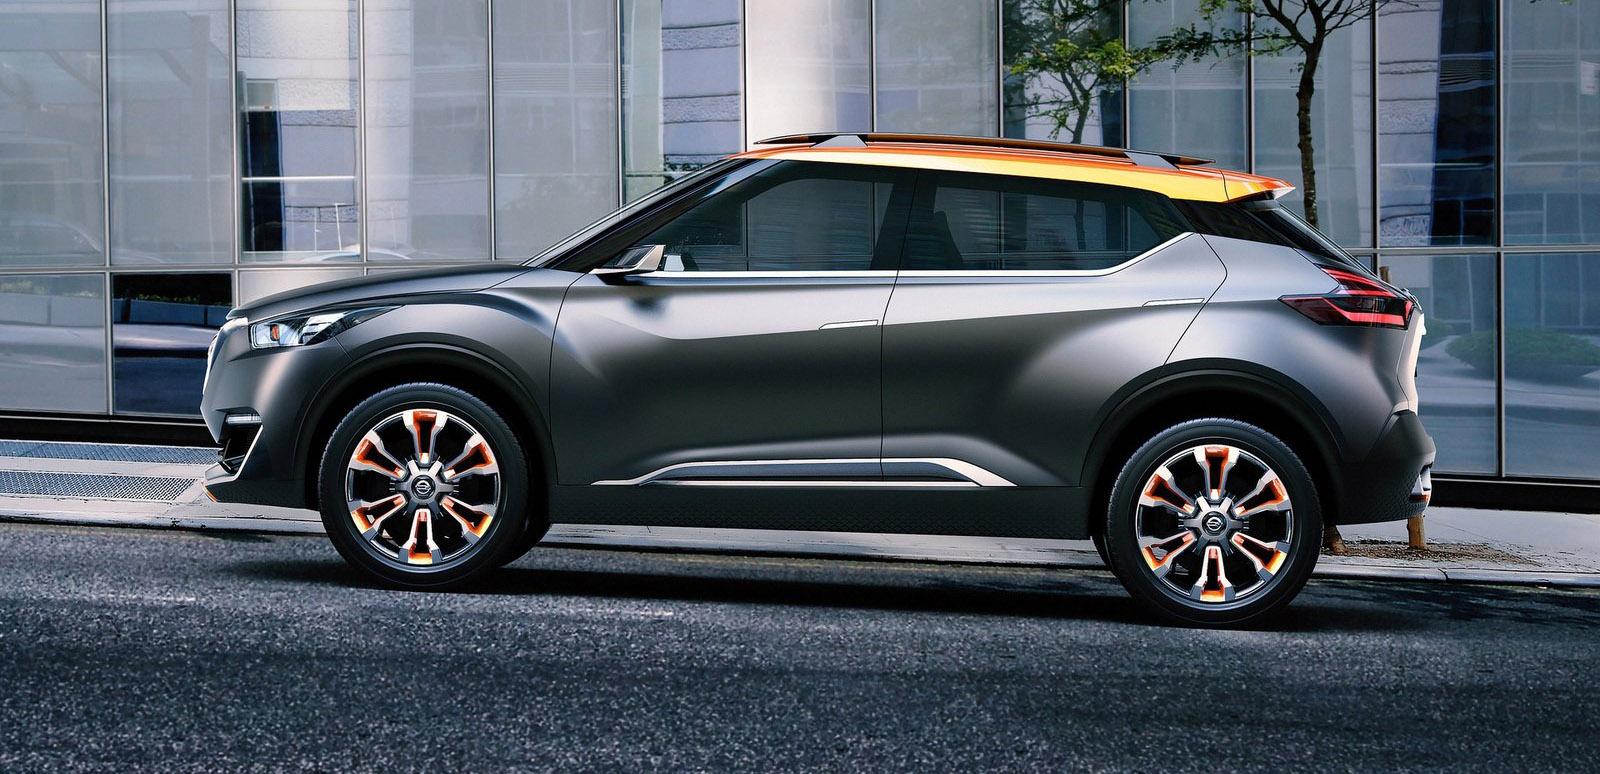 2018 nissan kicks usa. modren 2018 2016 nissan kicks suv confirmed u0027globalu0027 launch planned  photos 1 of 10 in 2018 nissan kicks usa